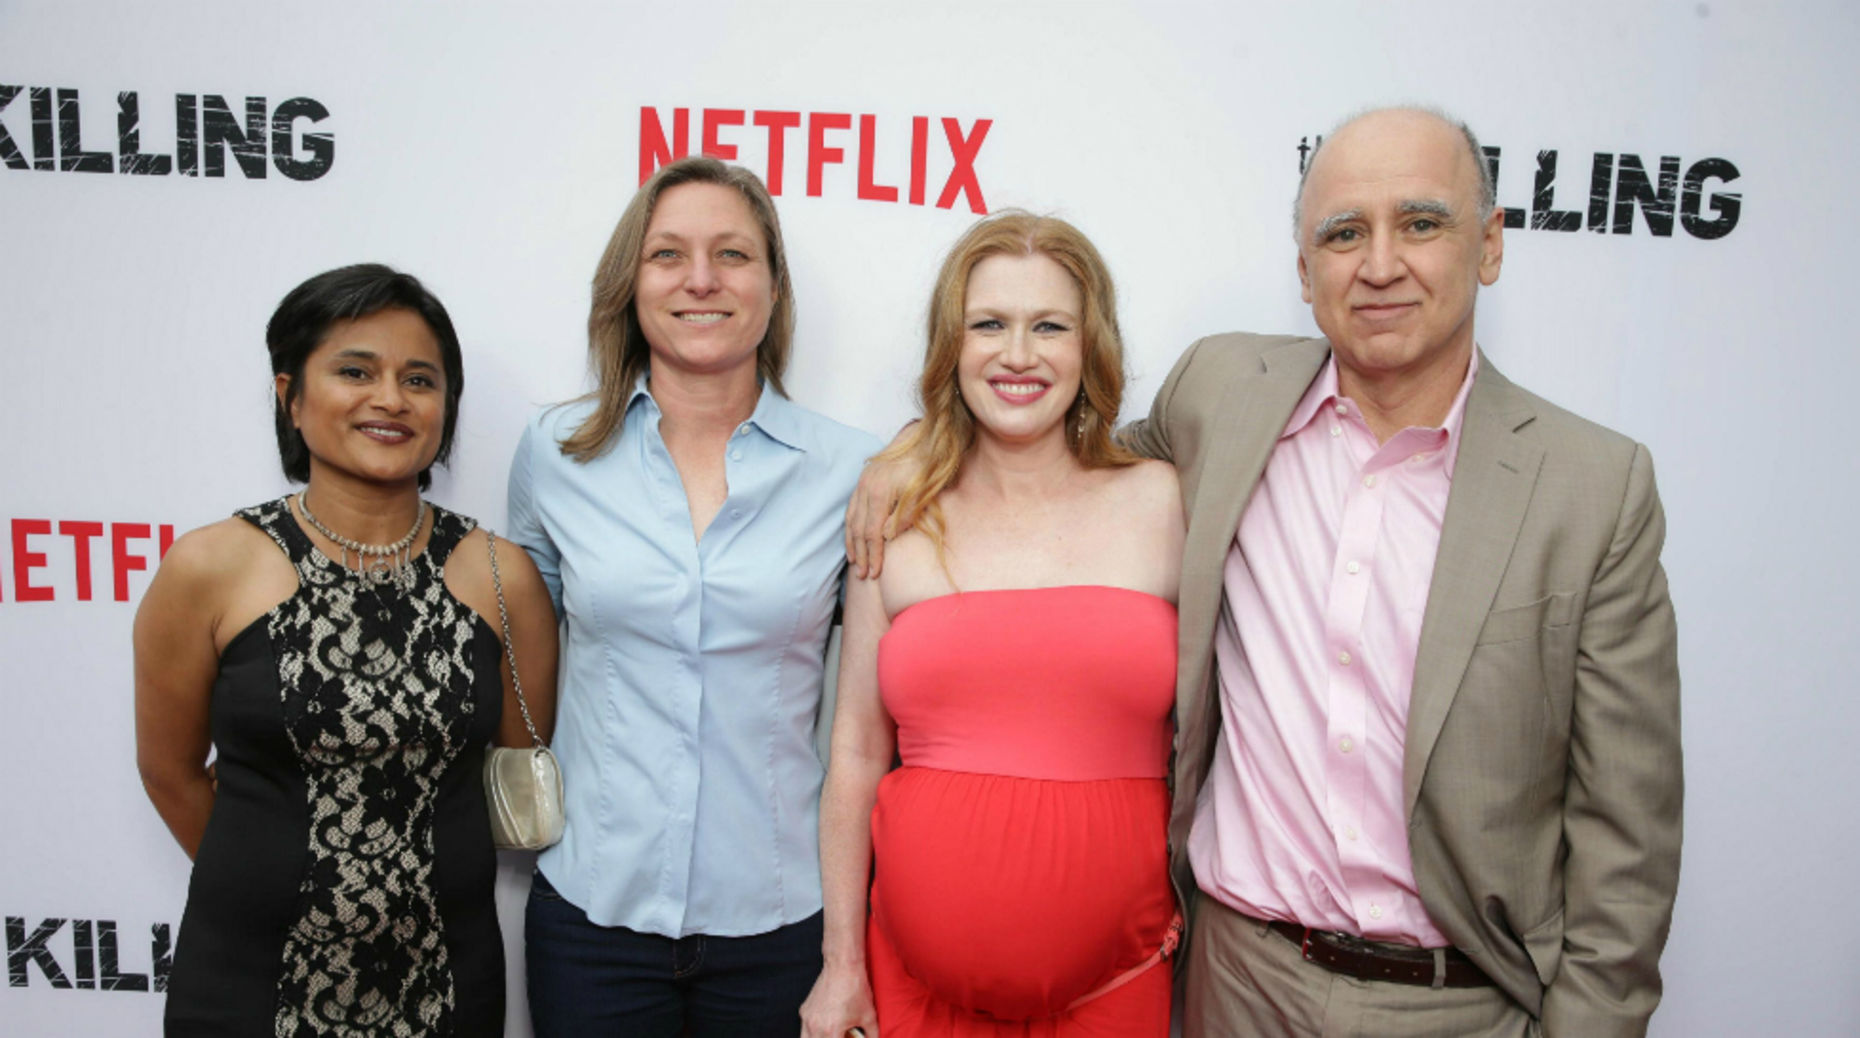 Producer Veena Sud, Netflix's Cindy Holland, star Mireille Enos and Fox's David Madden. AP Photo.